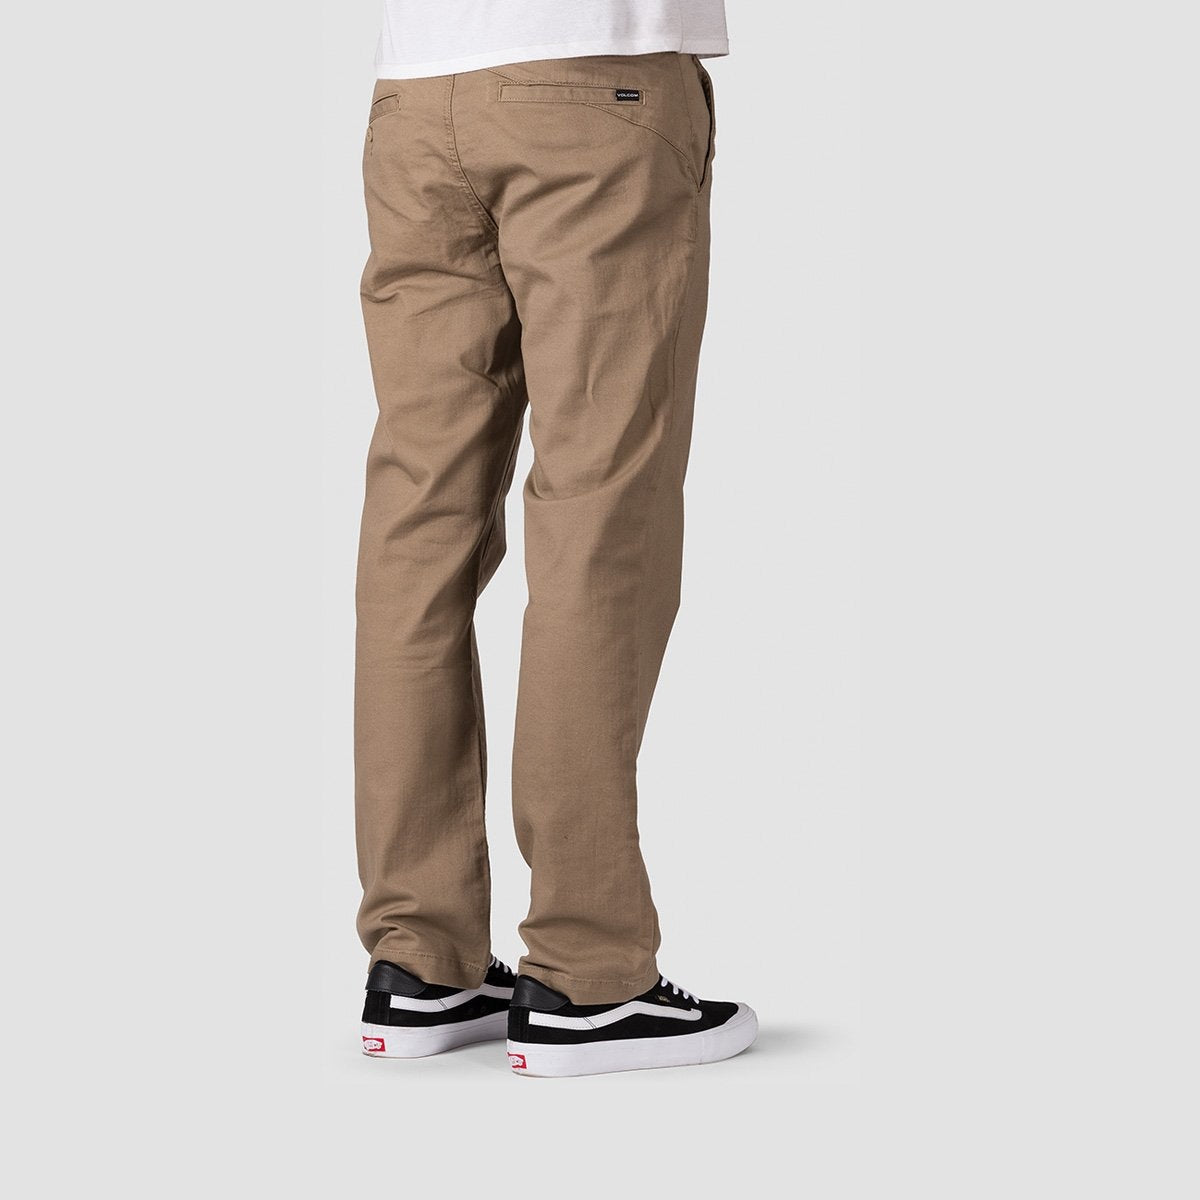 Volcom Frickin Regular Chino Pants Khaki - Clothing